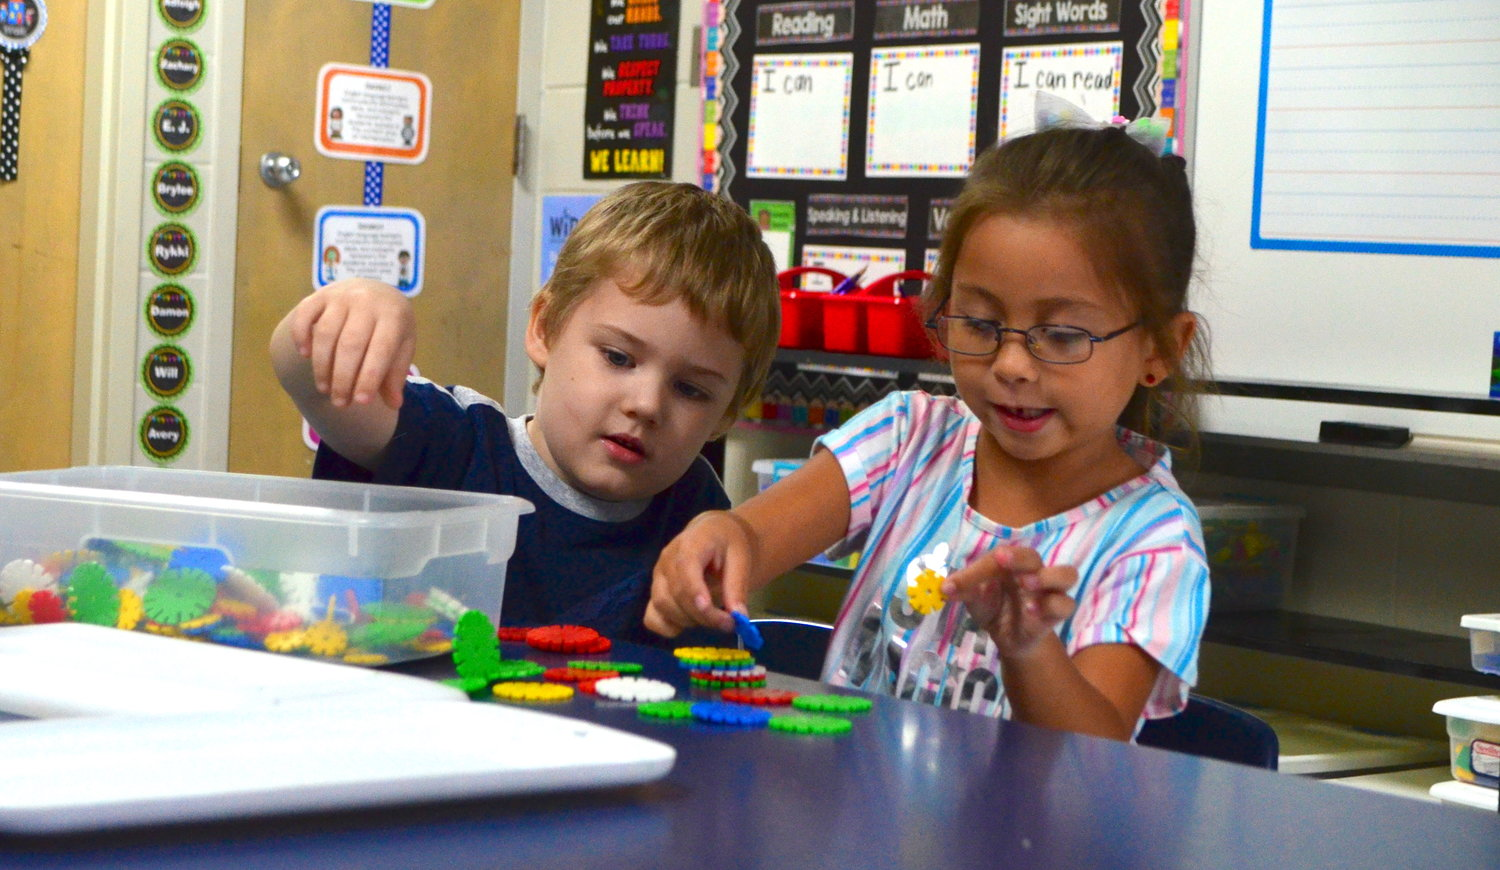 Kindergarten students had their first day at school at T.R. Simmons Elementary on Monday. Children were busy completing STEM (science, technology, engineering and mathematics) activities in some rooms, while other students were practicing their reading skills.